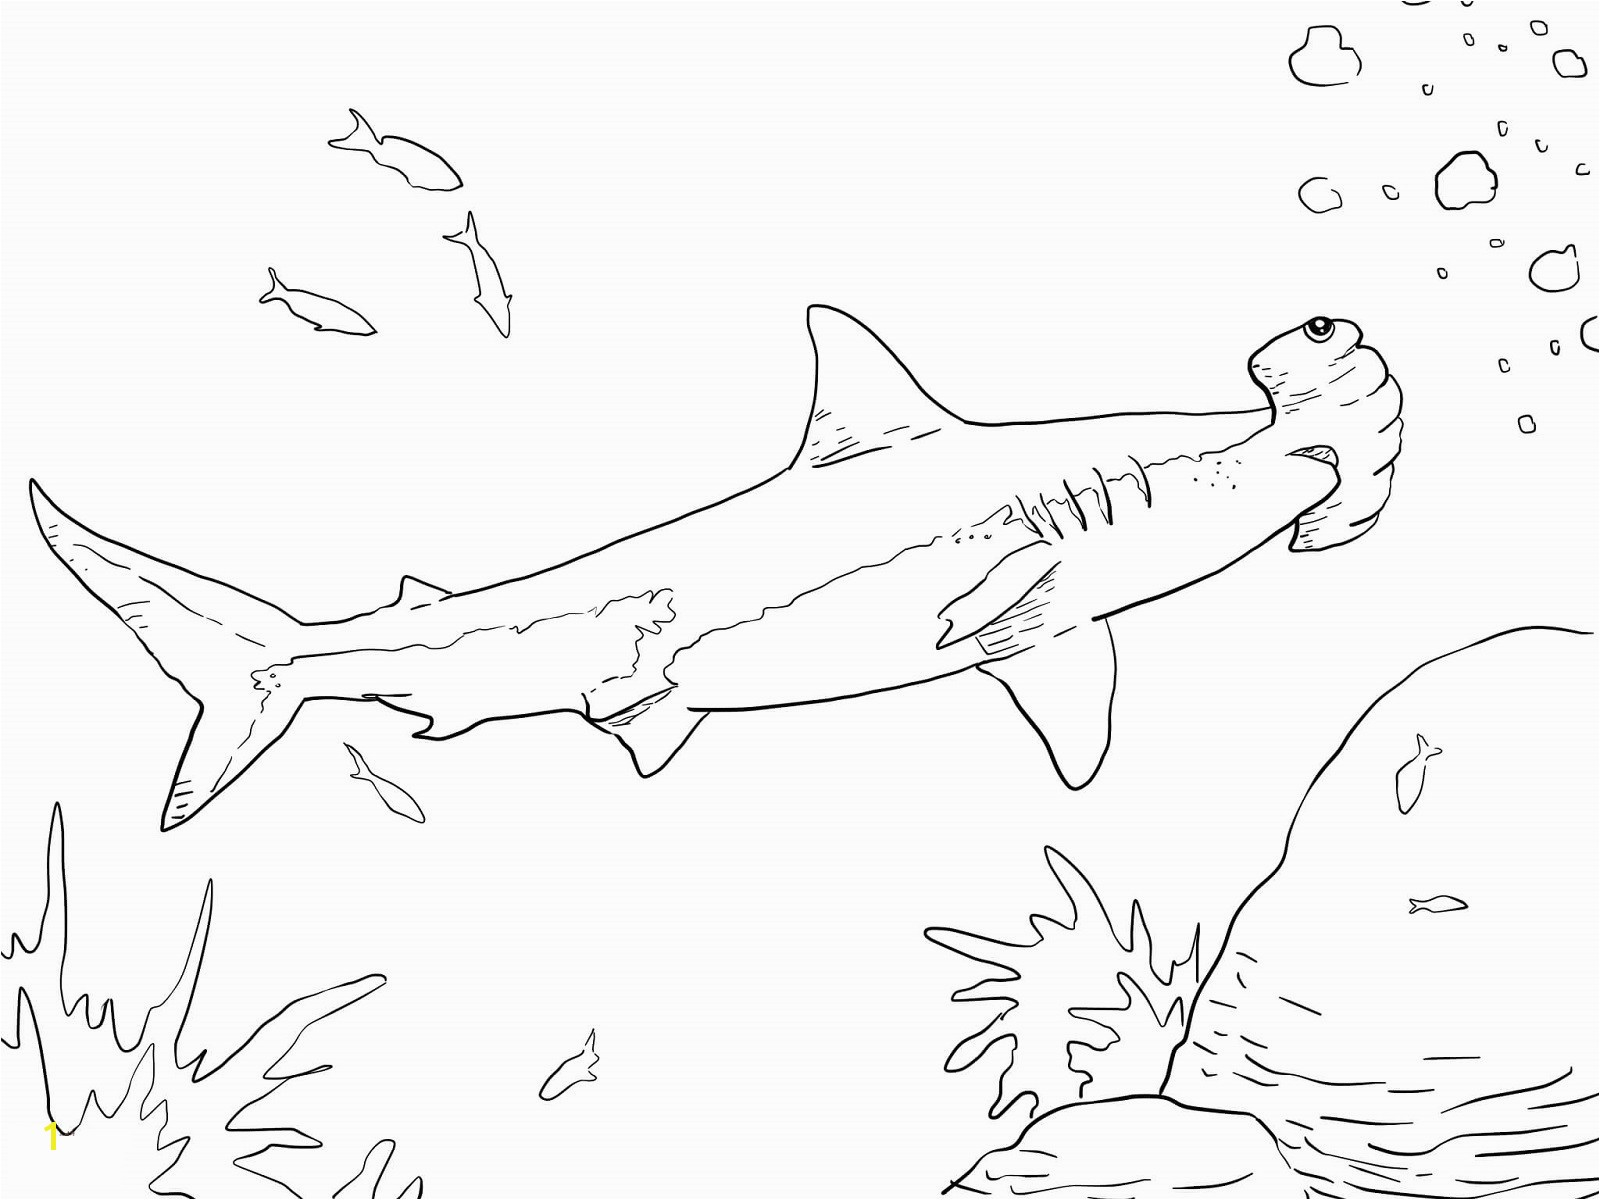 hammerhead shark coloring page coloring pages wildlife research conservation coloring page shark hammerhead